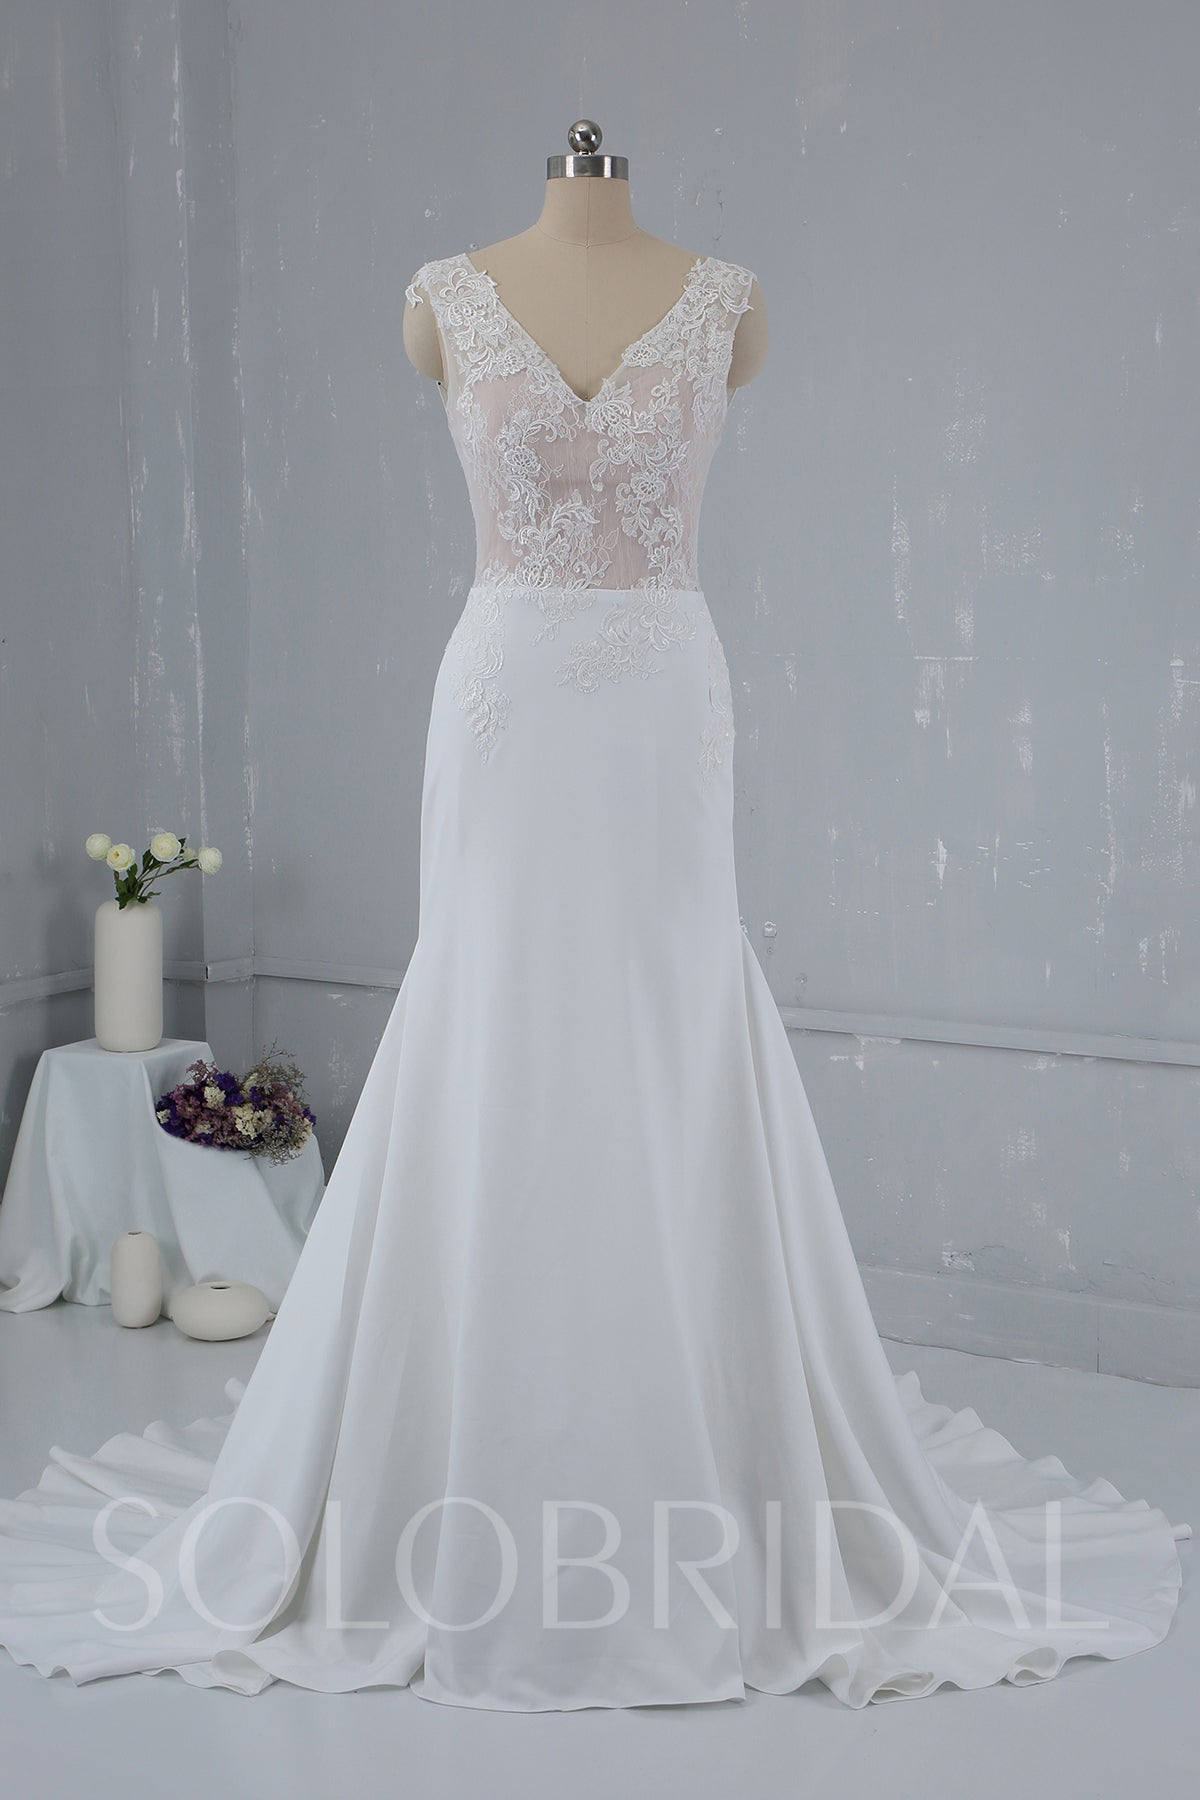 Skin Color Lace Bodice with Crepe Skirt Triangle Pleatings Ivory Wedding Dress